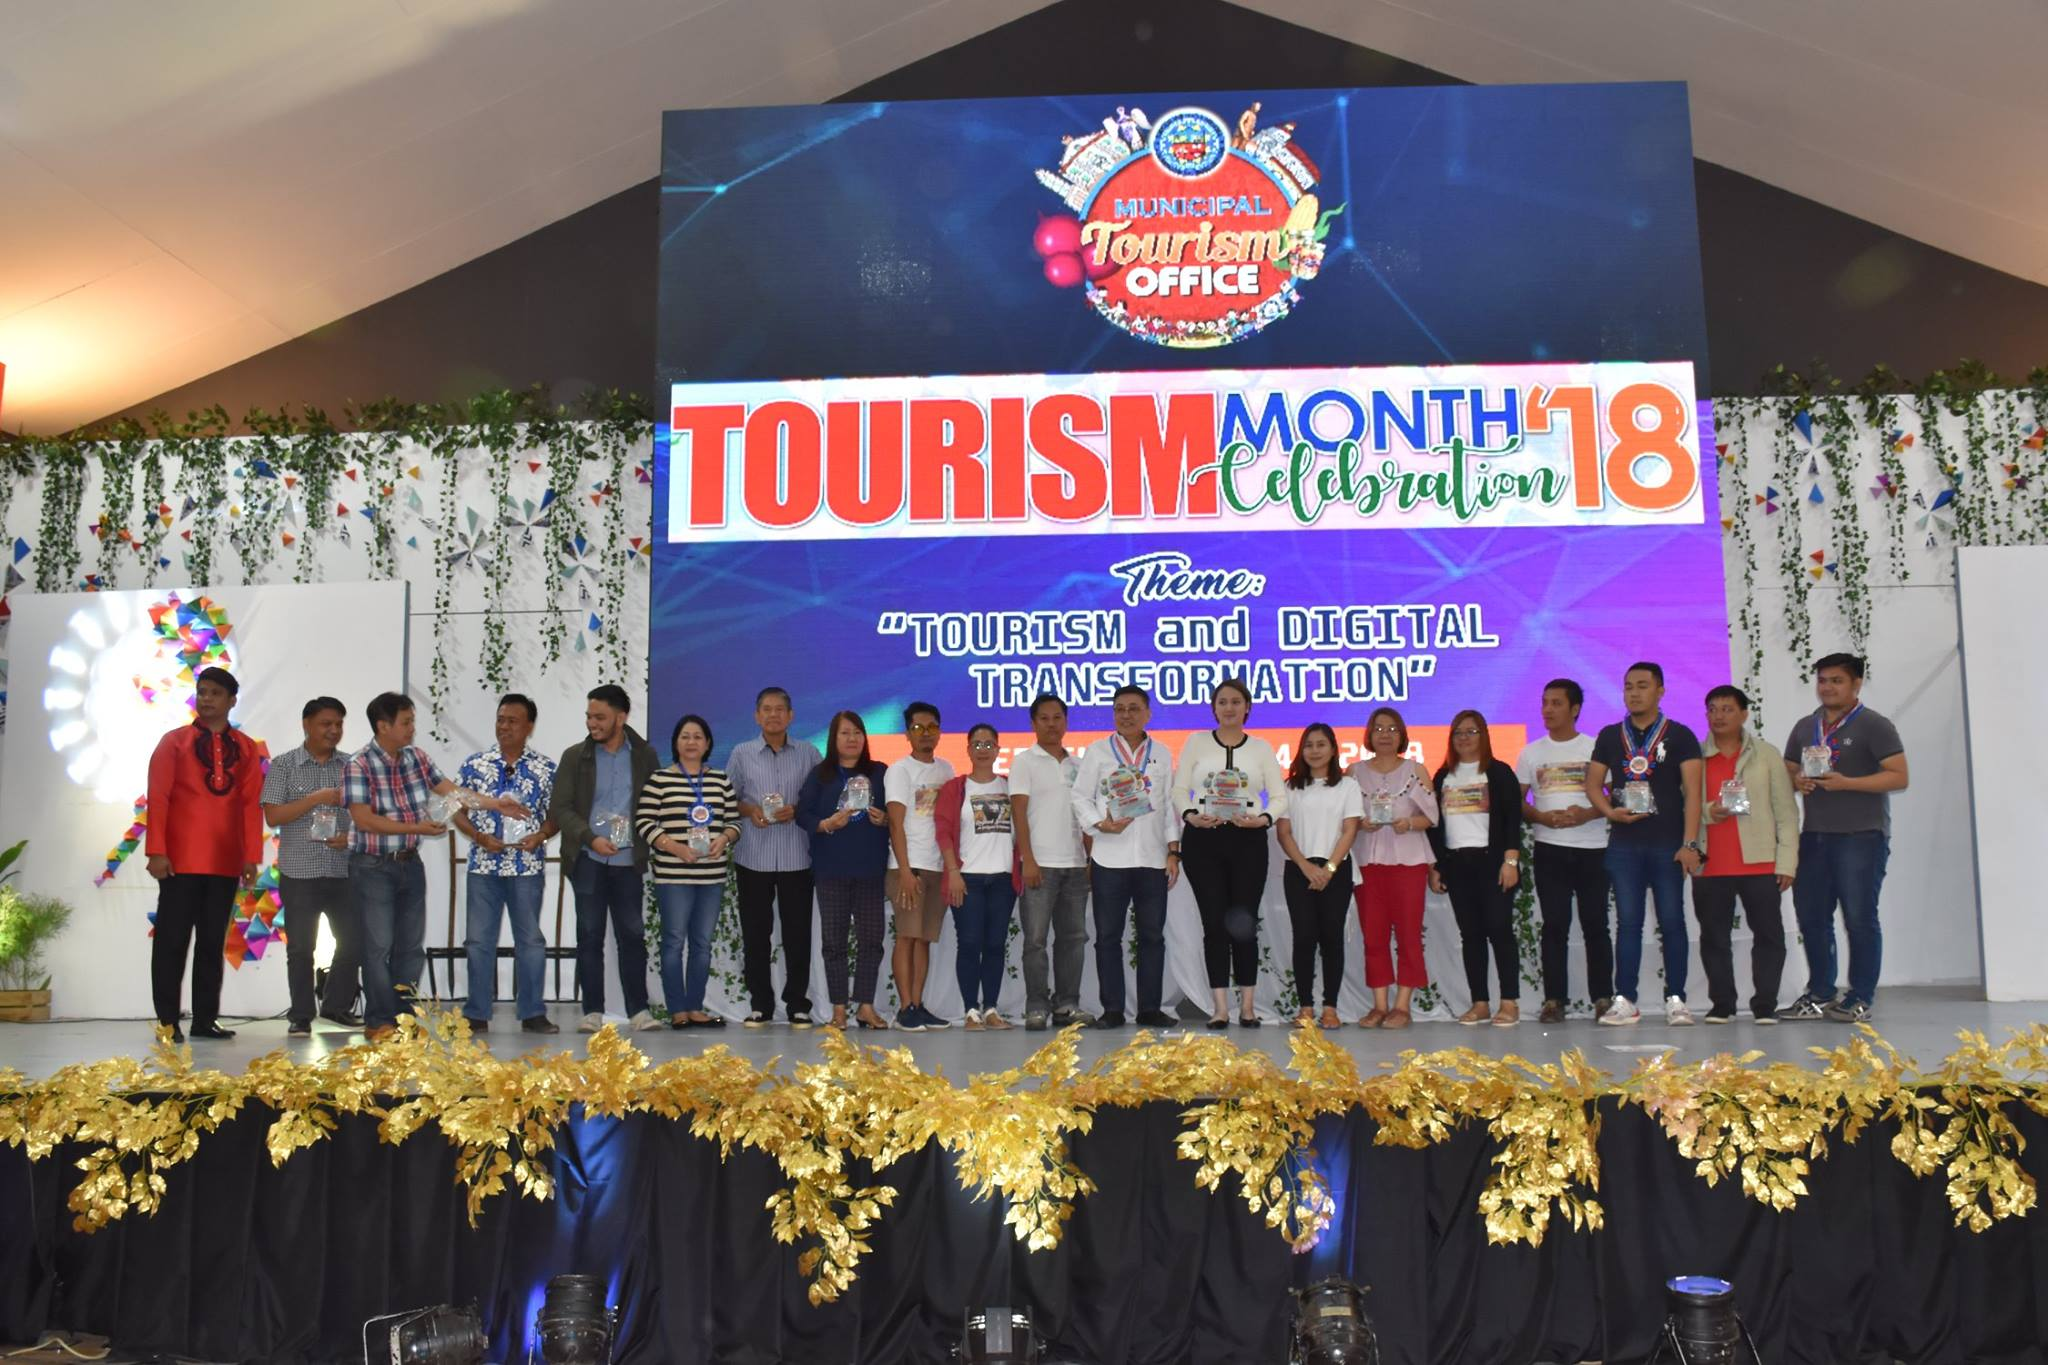 Day 5 of LGU-Bayambang's Tourism Week: The Culmination Program and Awarding Ceremony